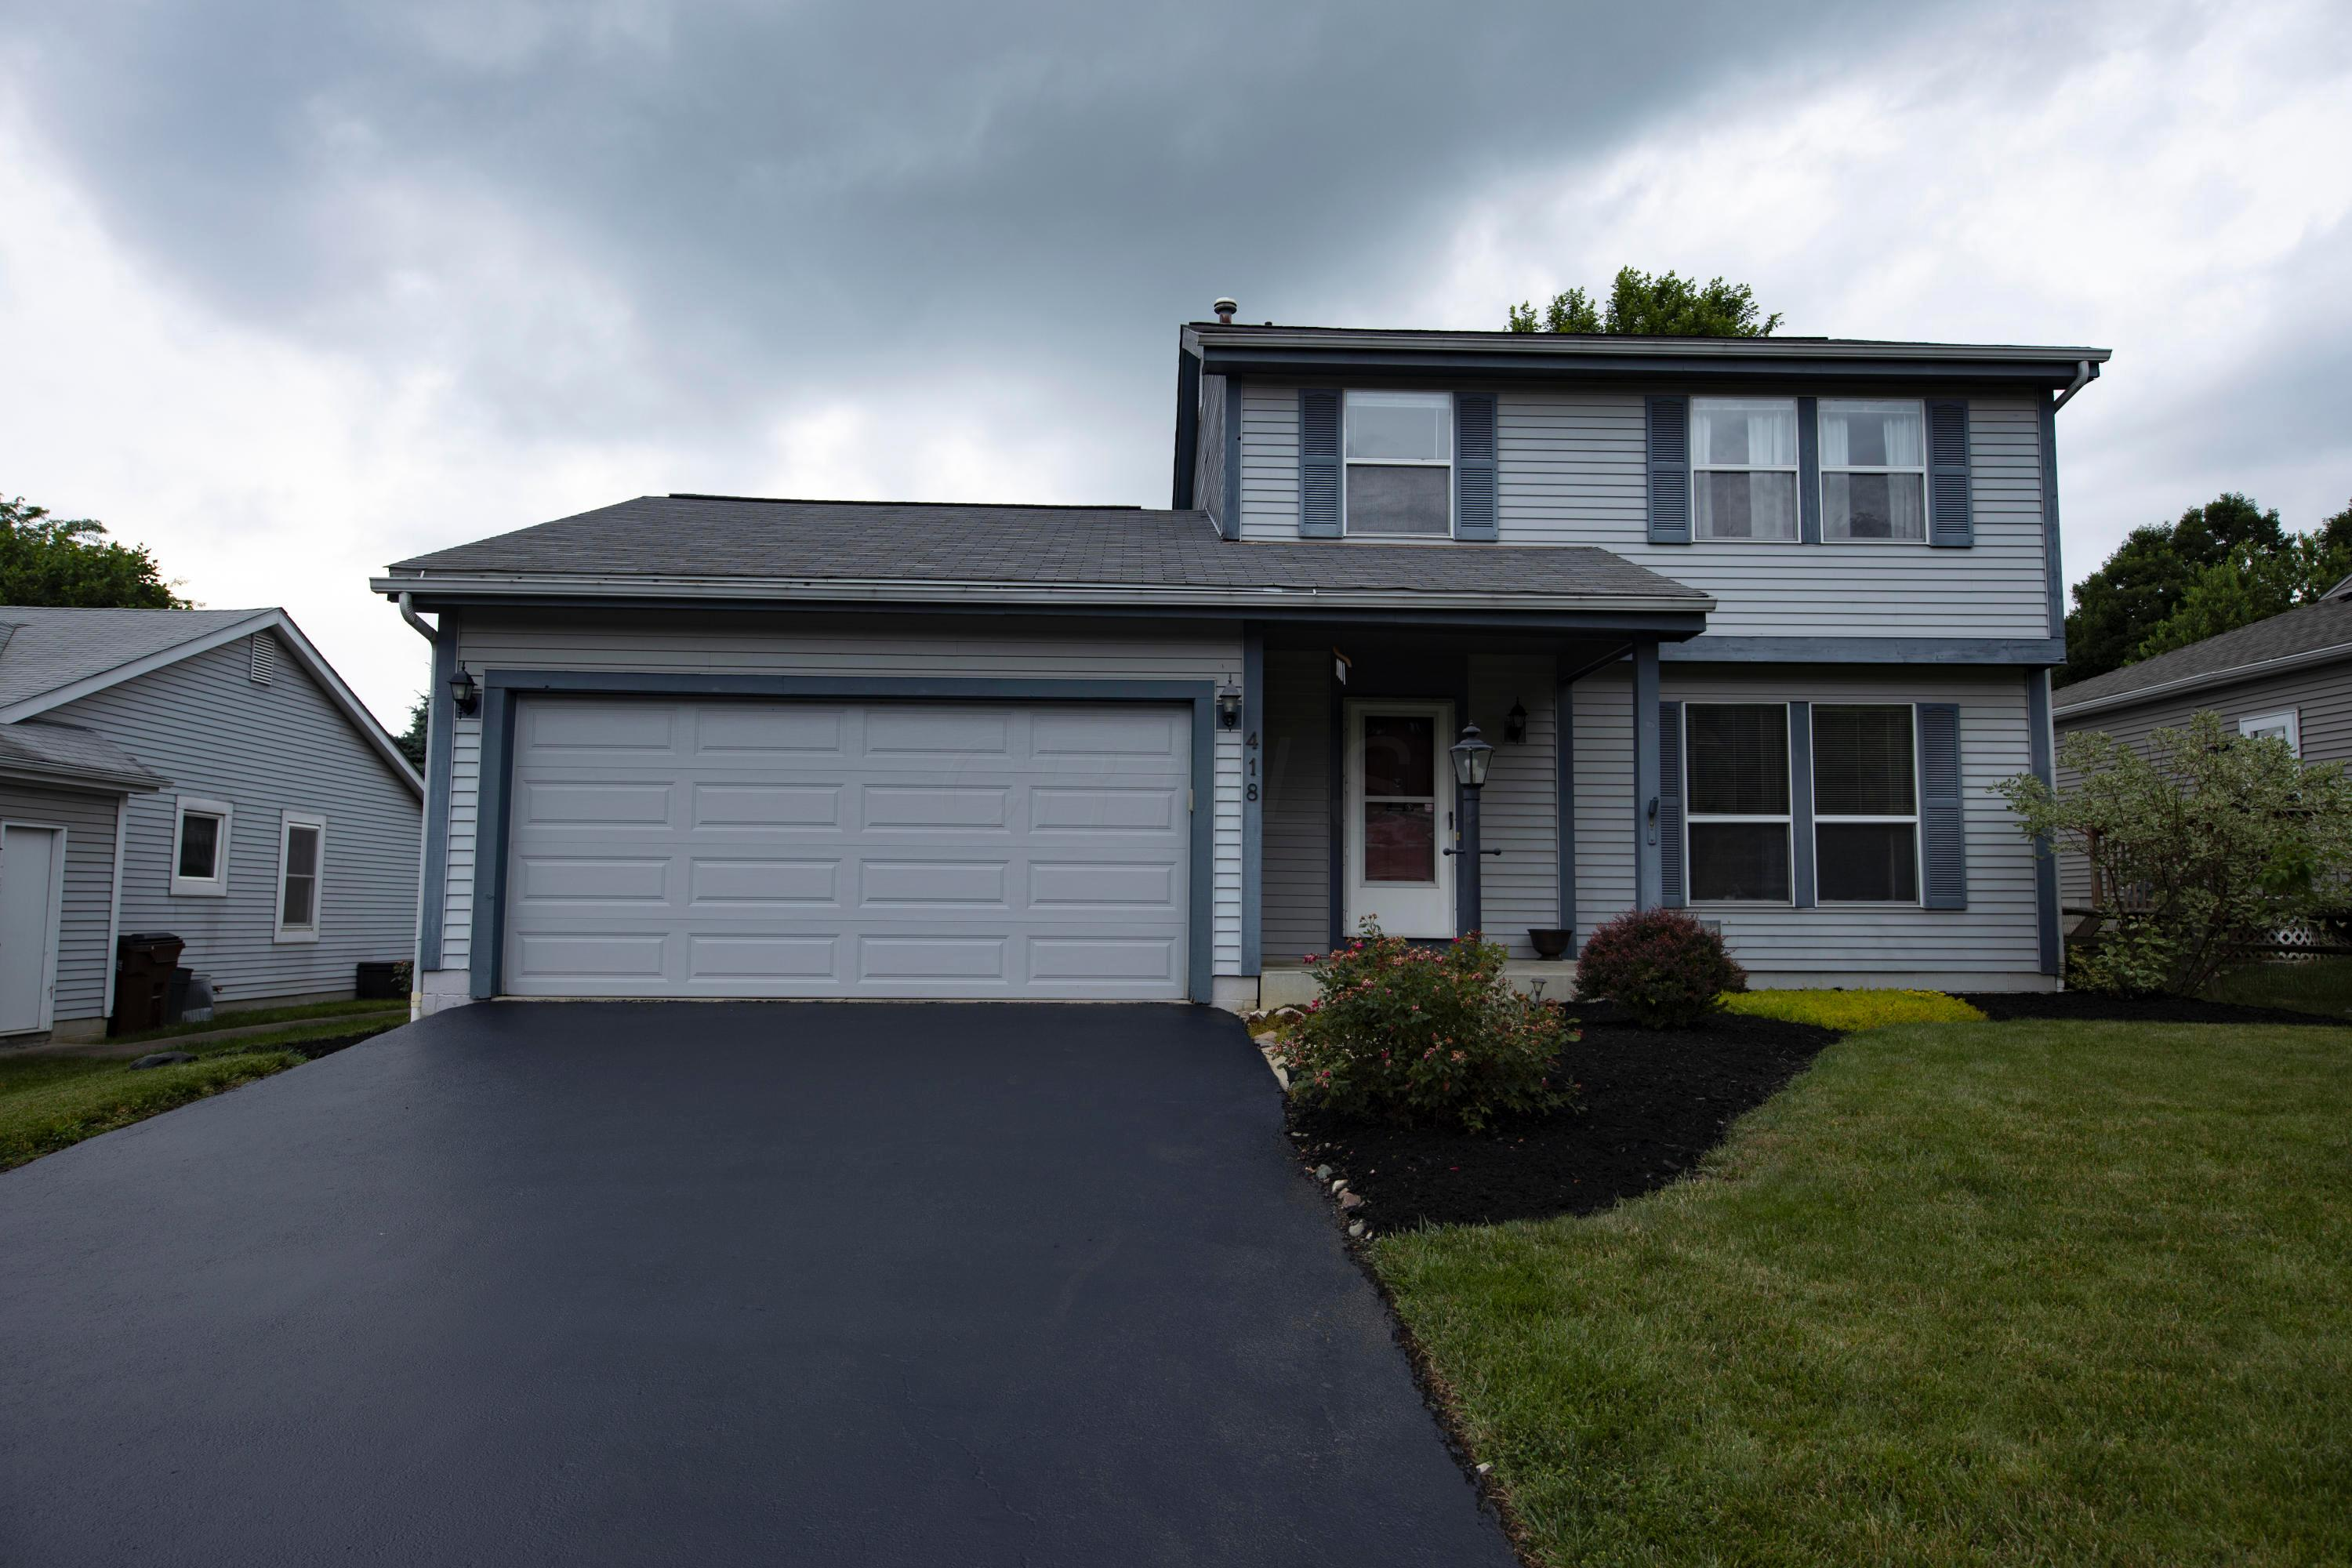 418 High Meadows Village Drive, Powell, Ohio 43065, 3 Bedrooms Bedrooms, ,3 BathroomsBathrooms,Residential,For Sale,High Meadows Village,220020871